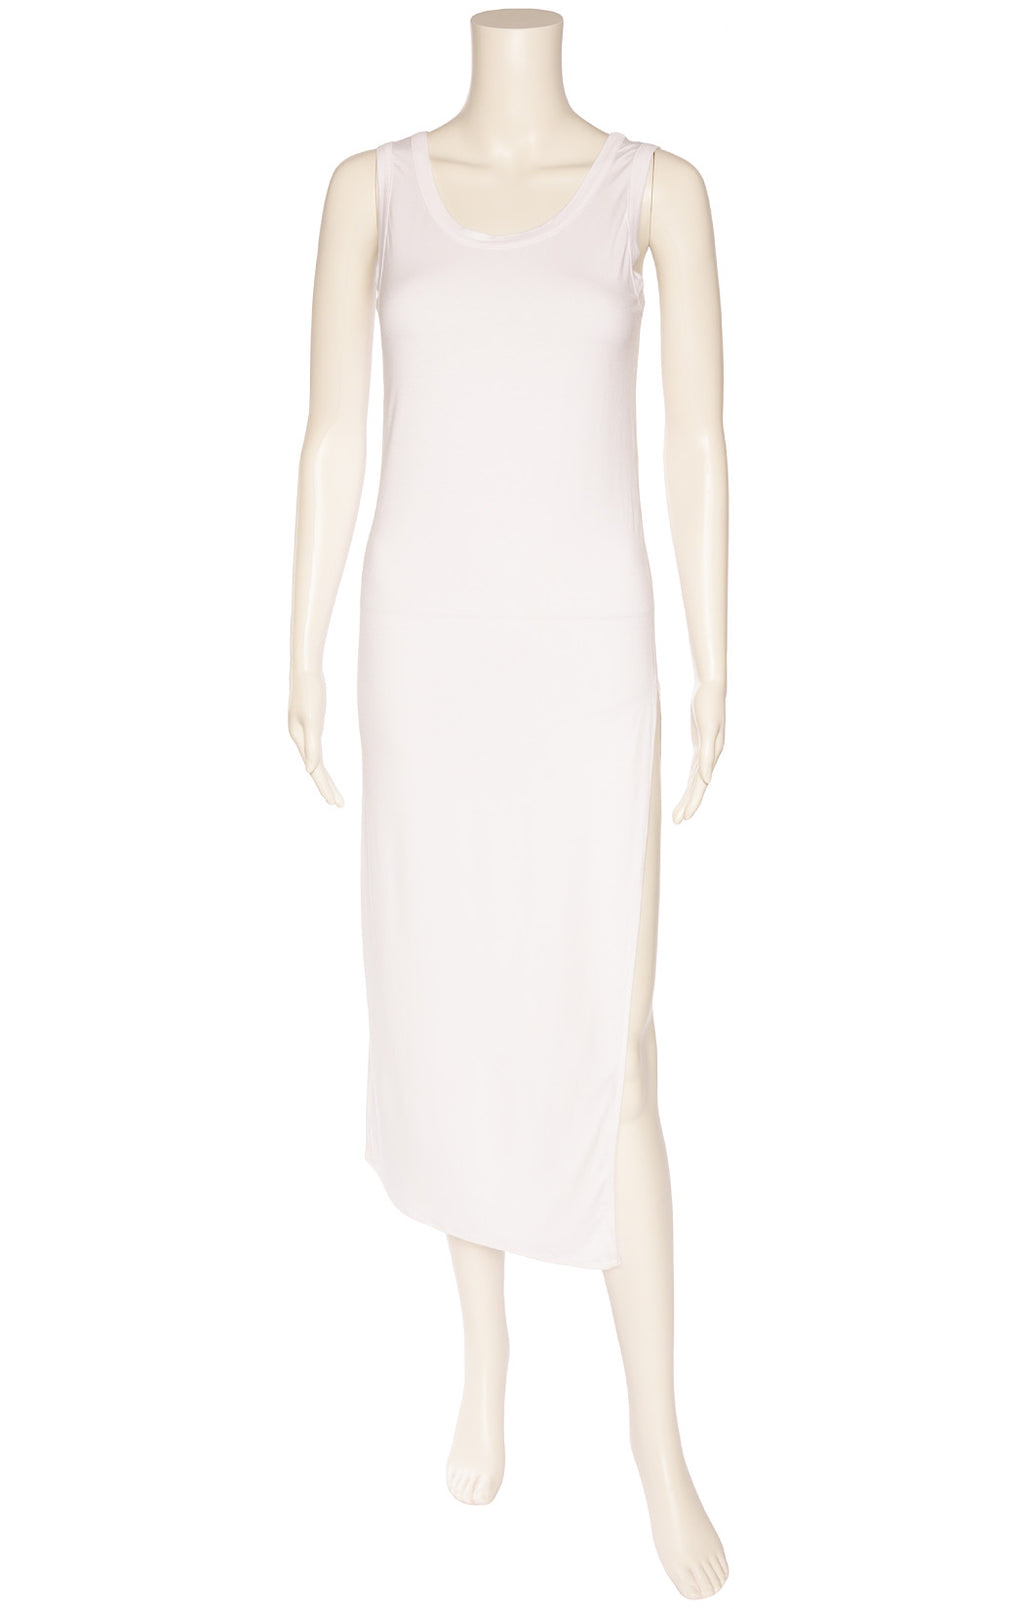 MARTIN MARGIELA with tags Dress Size: IT 40 (comparable to US 2-4)